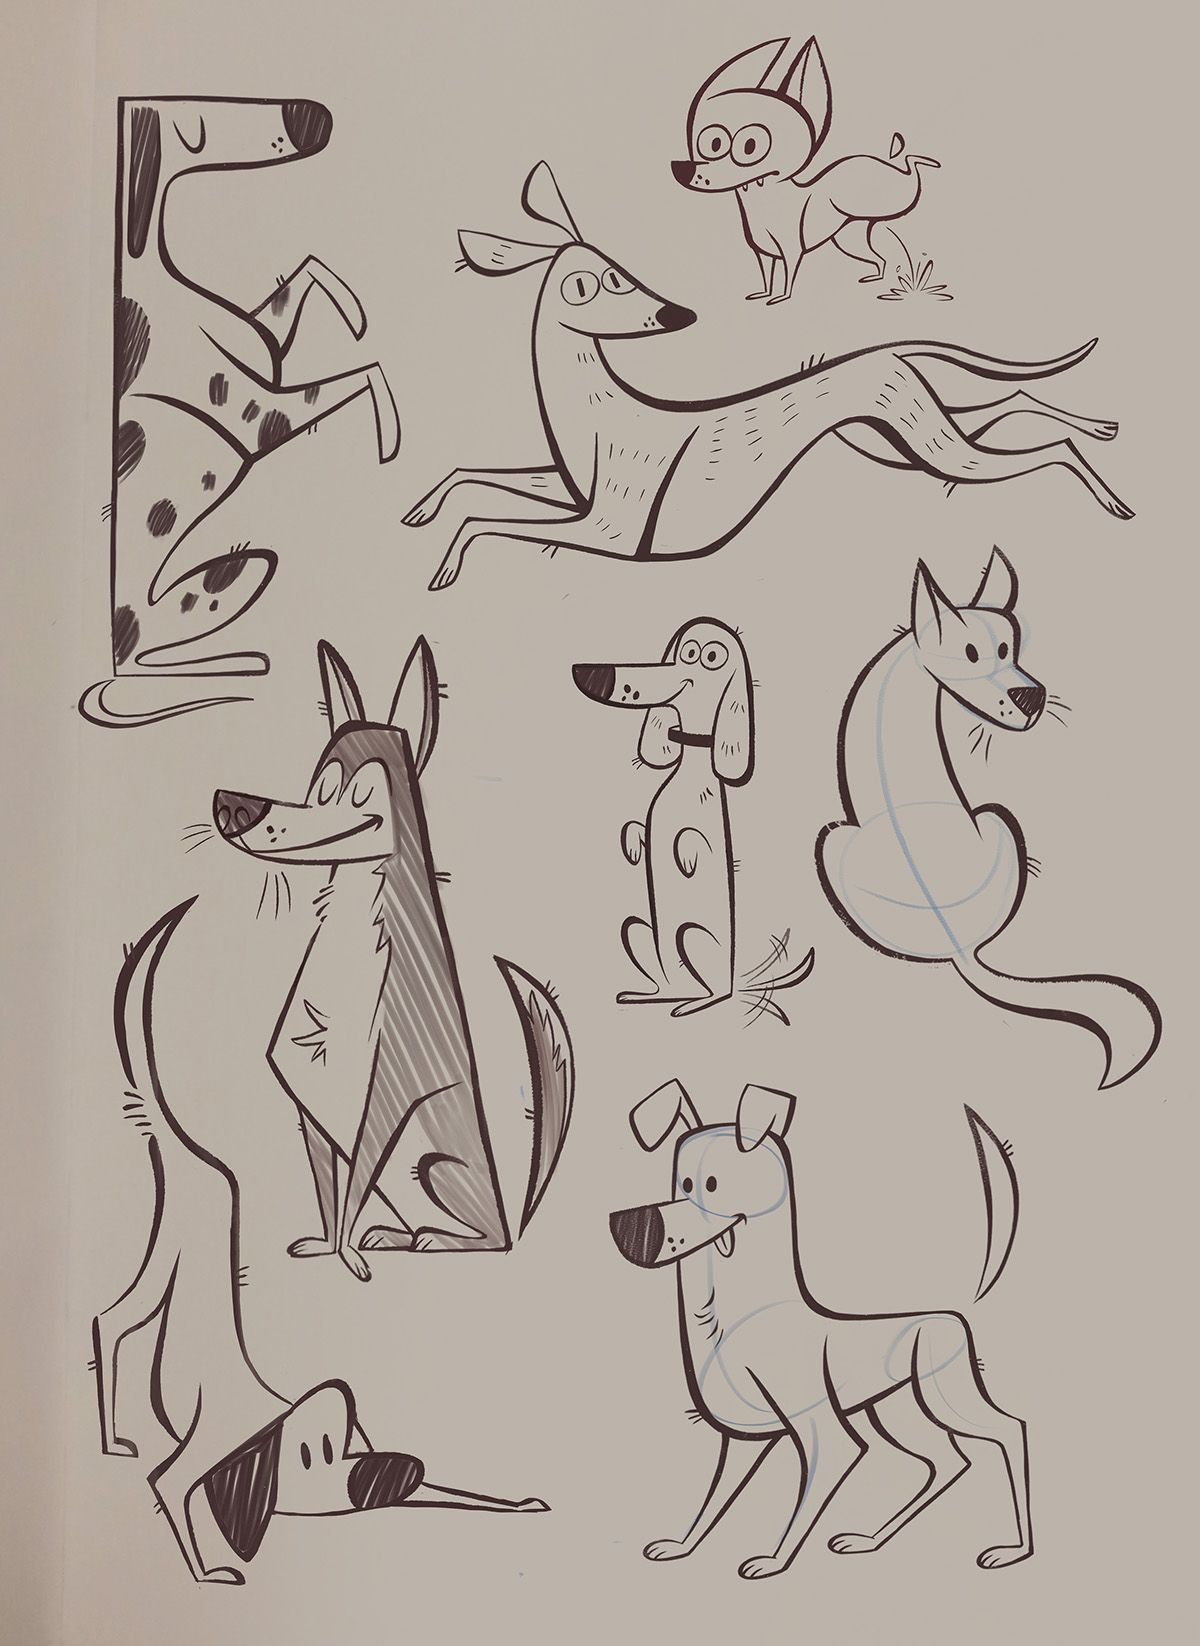 Trying To Improve On My Sketching Skills So Here Is A Collection Of Doodles That I Will Be Updating Cartoon Character Design Cartoon Drawings Animal Drawings